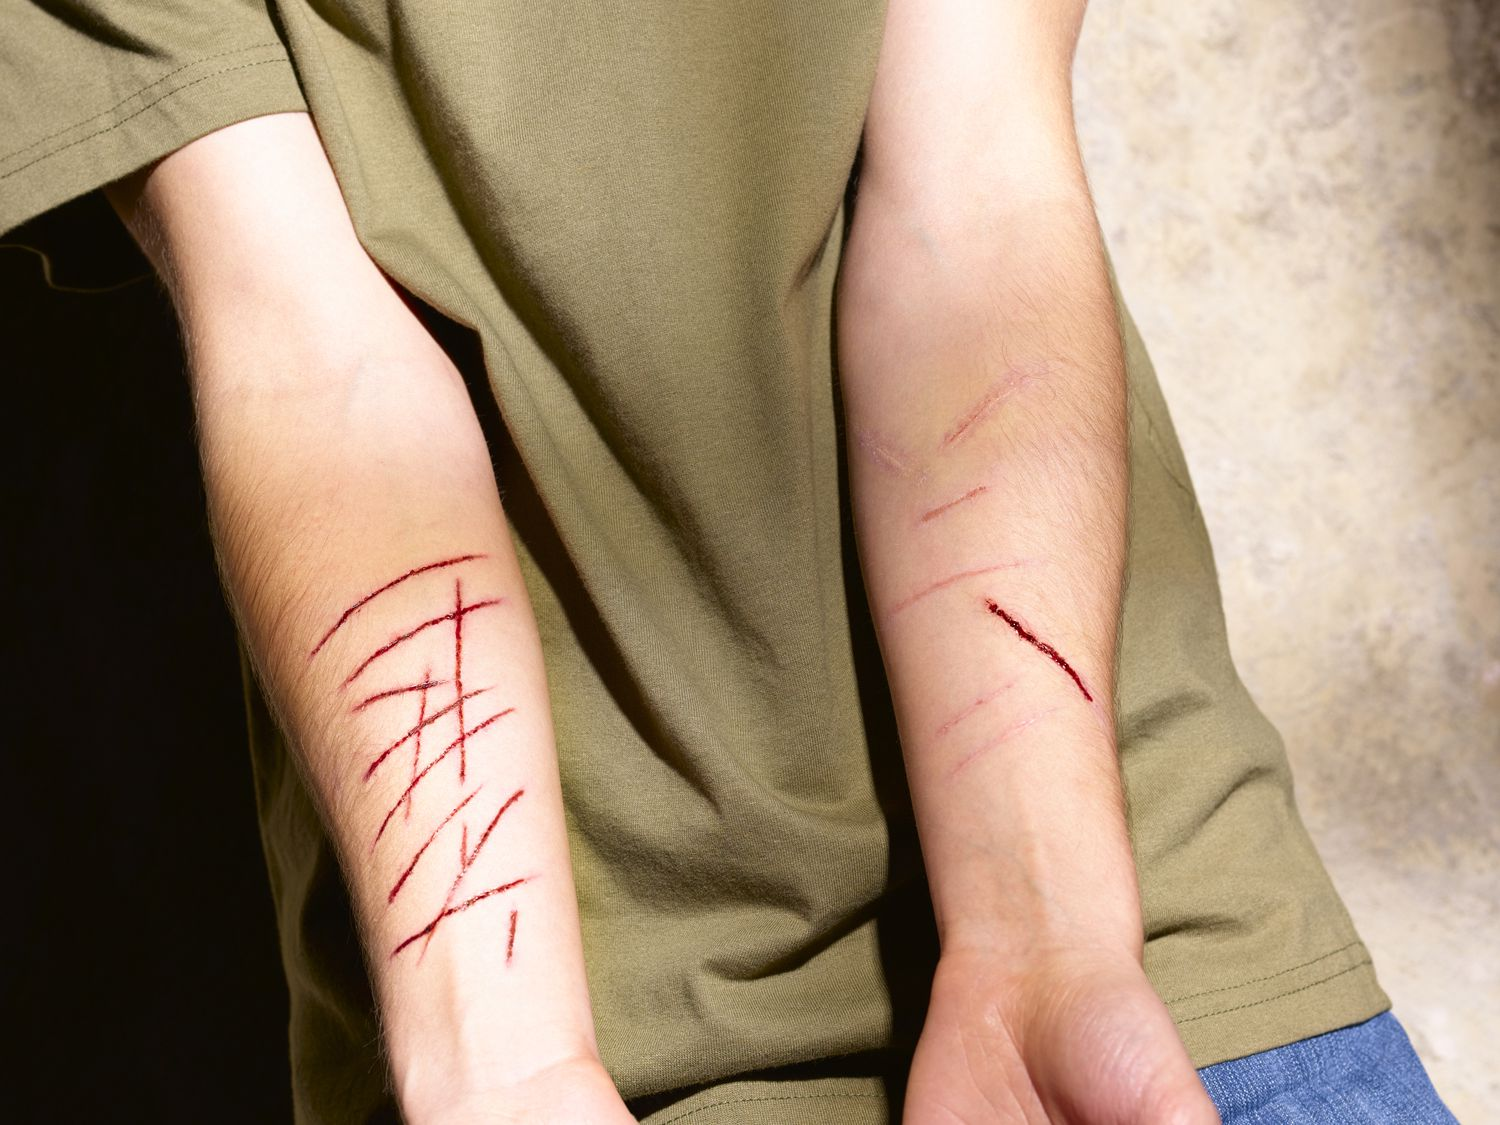 Forms of Self-Harm Common in People With PTSD